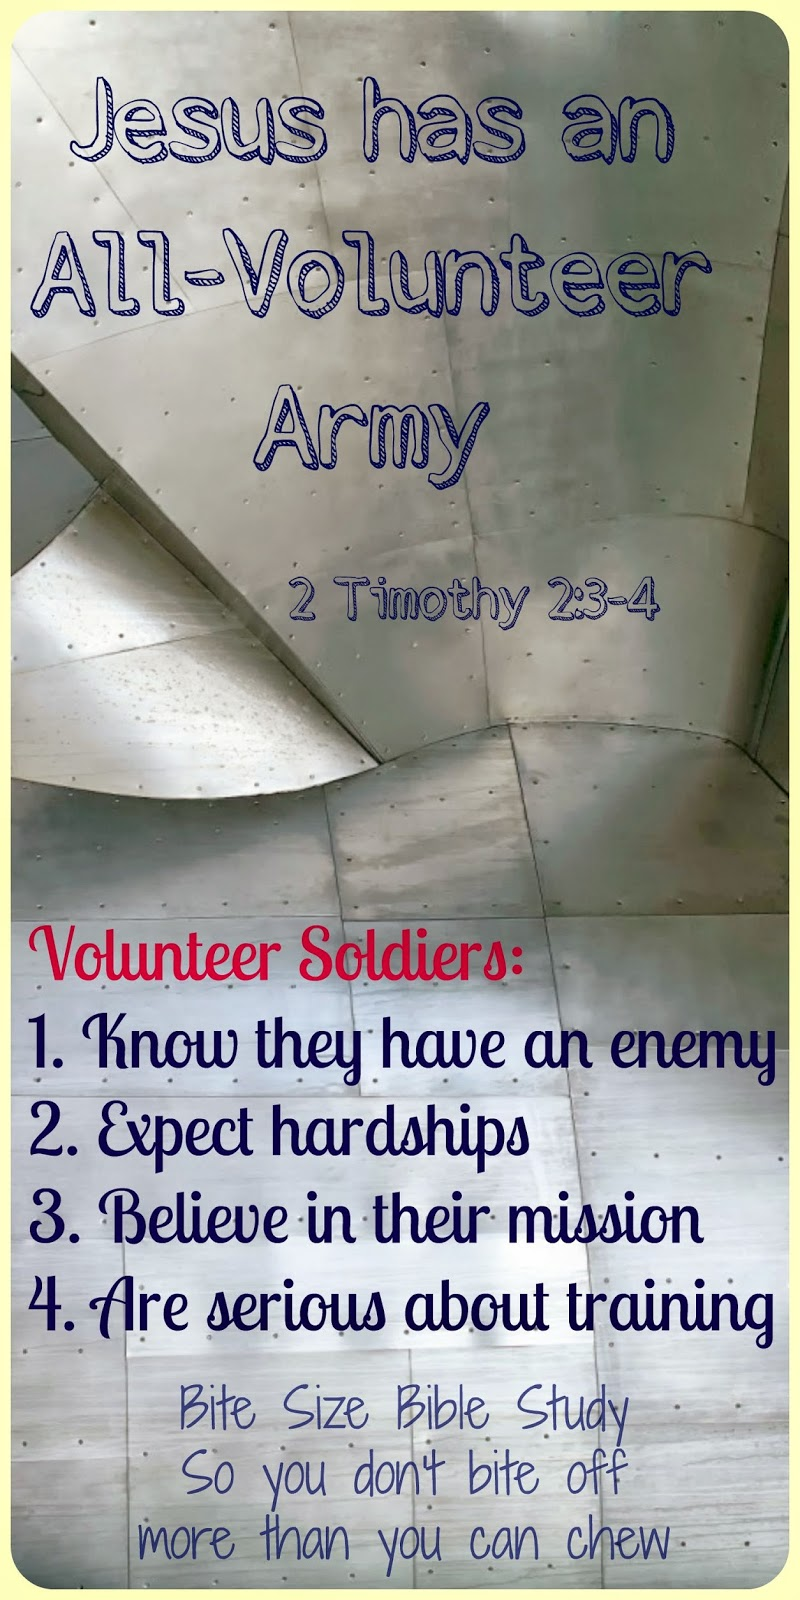 2 Timothy 2:3-4, soldiers for Christ, dedicated soldiers of the cross